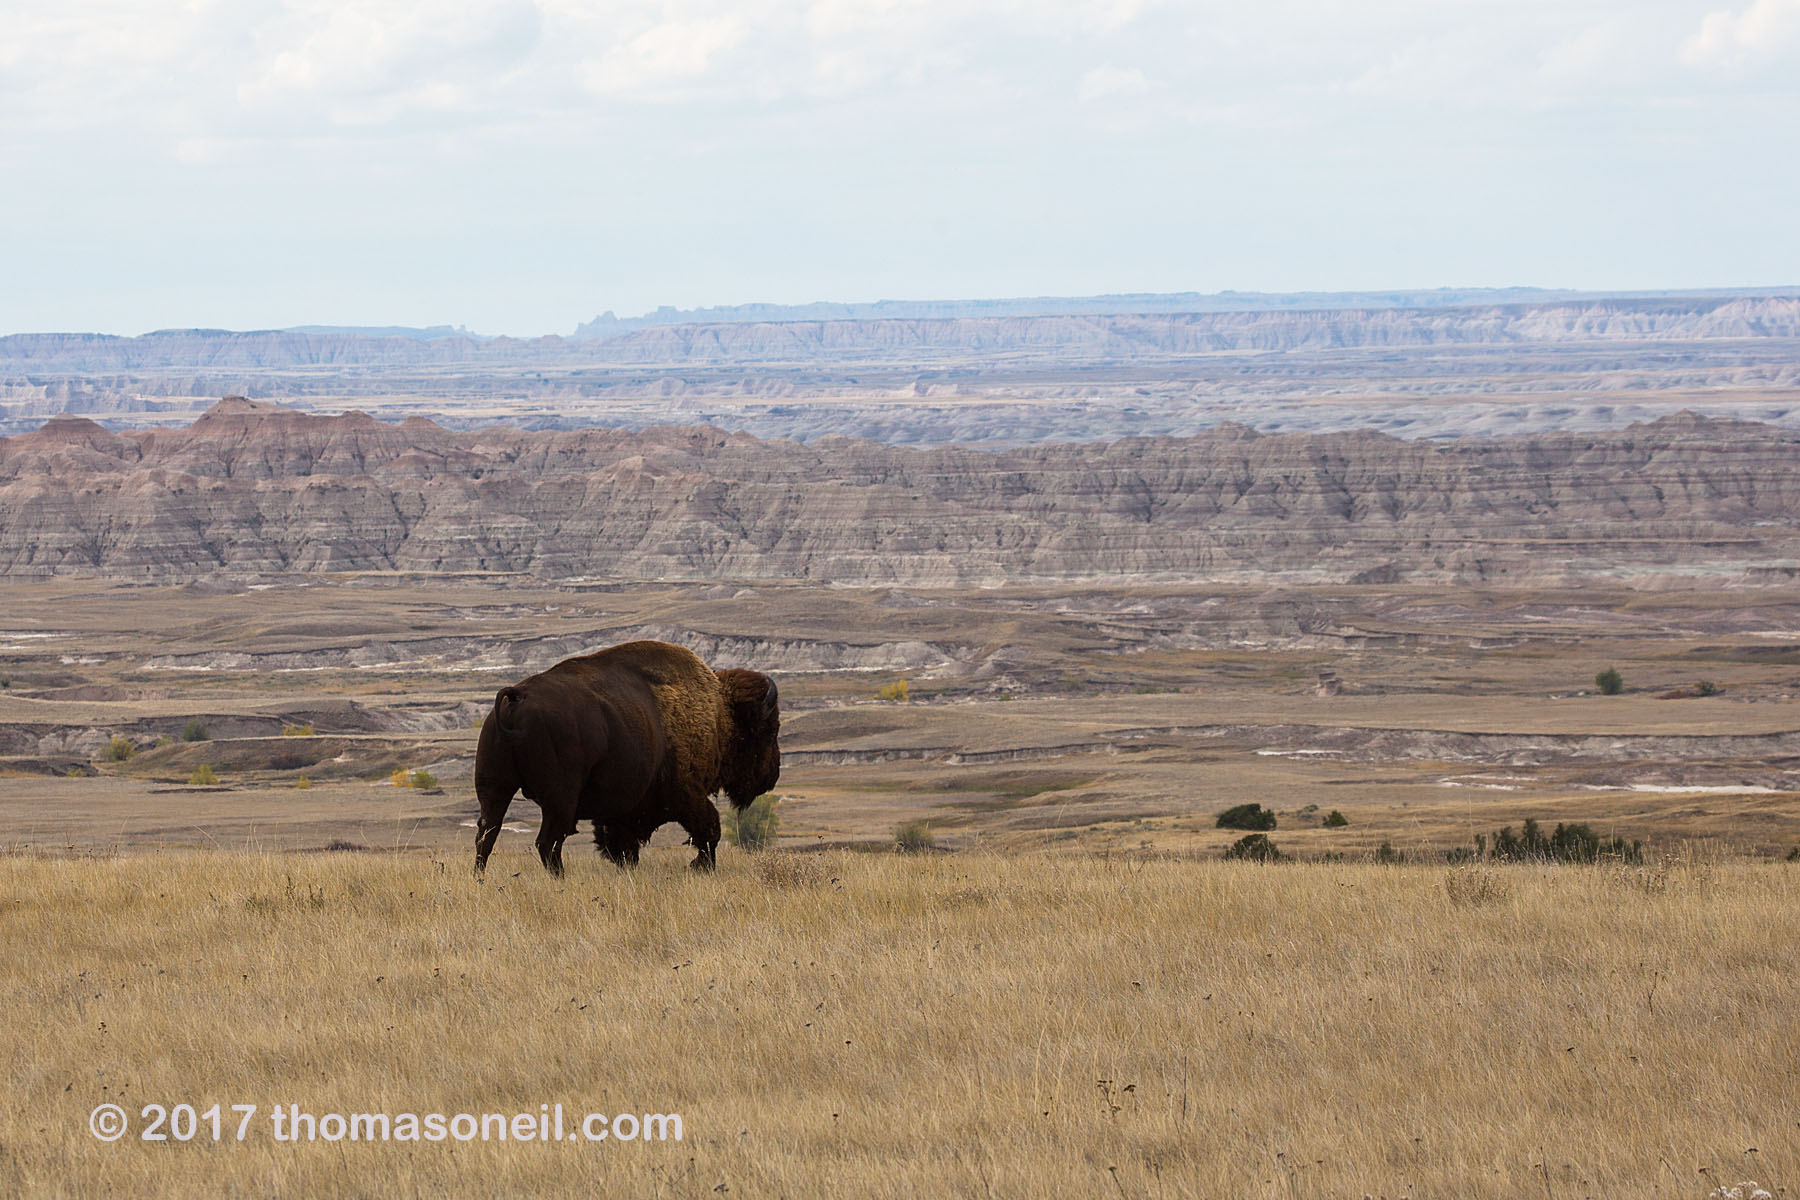 A solitary bison looking for a spot to graze along the rim above the Badlands, South Dakota, September 2017.  Click for next photo.